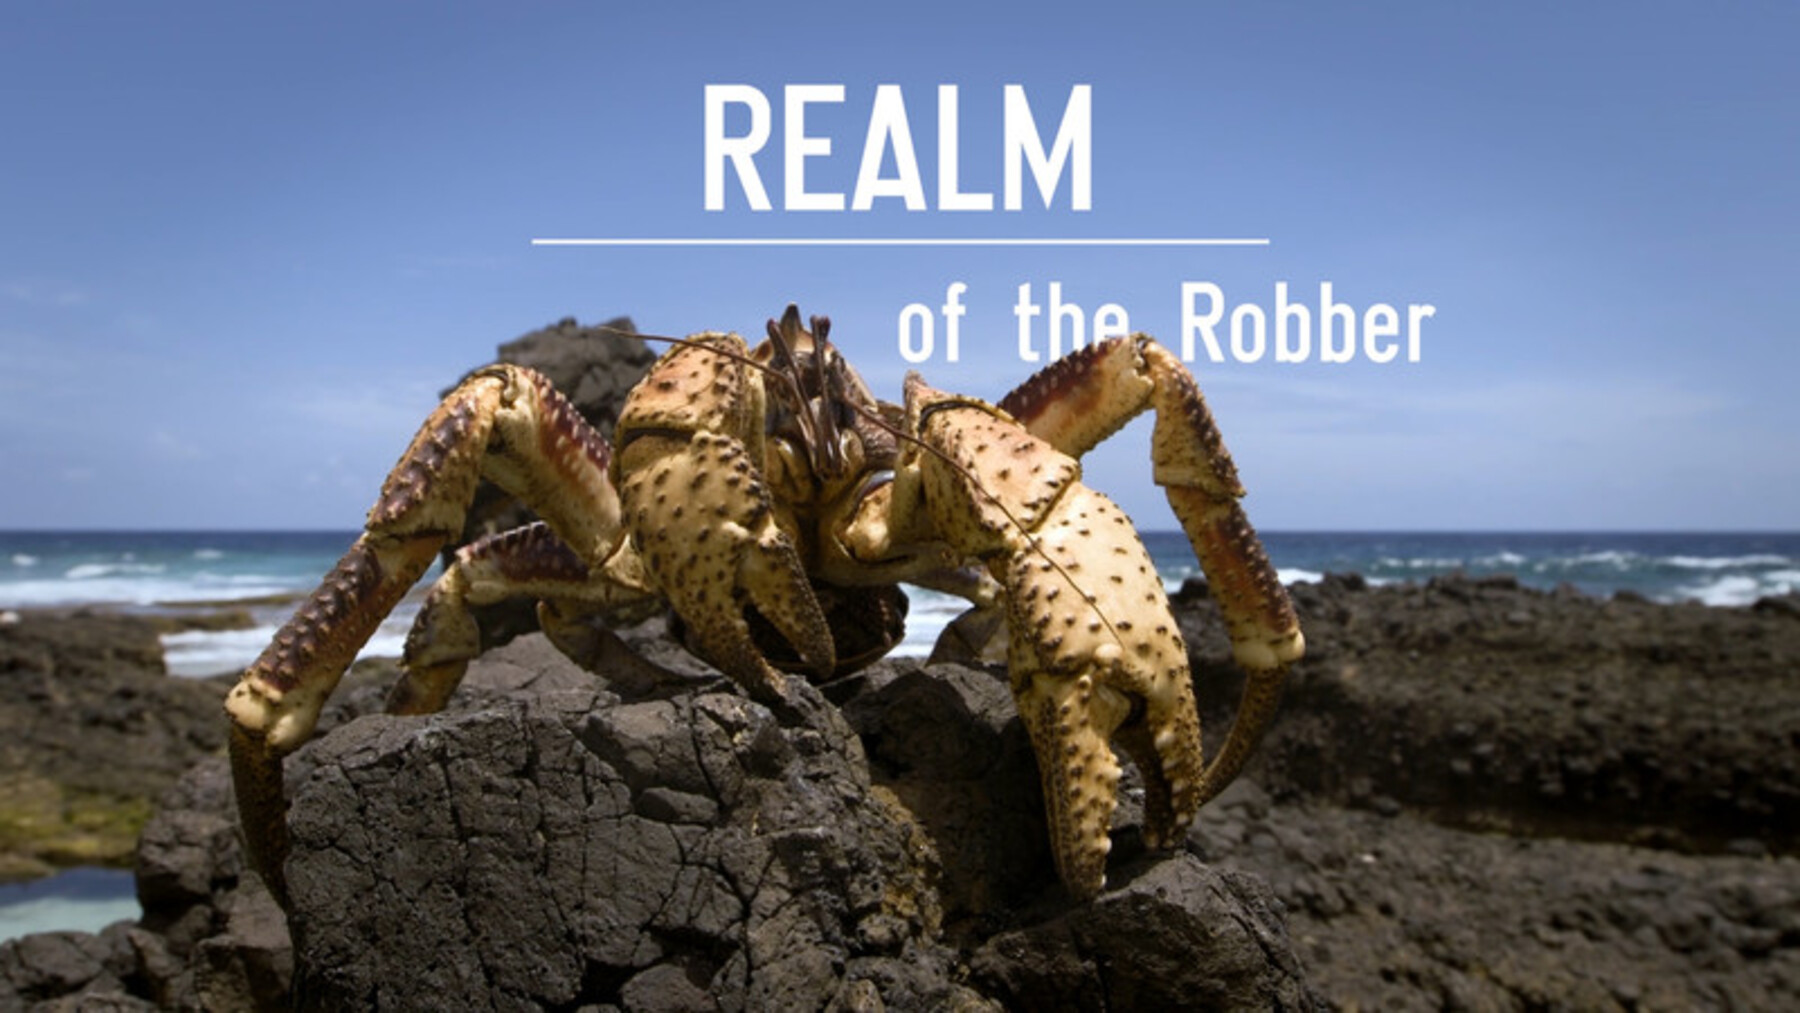 affiche poster realm robber christmas island disney nat geo